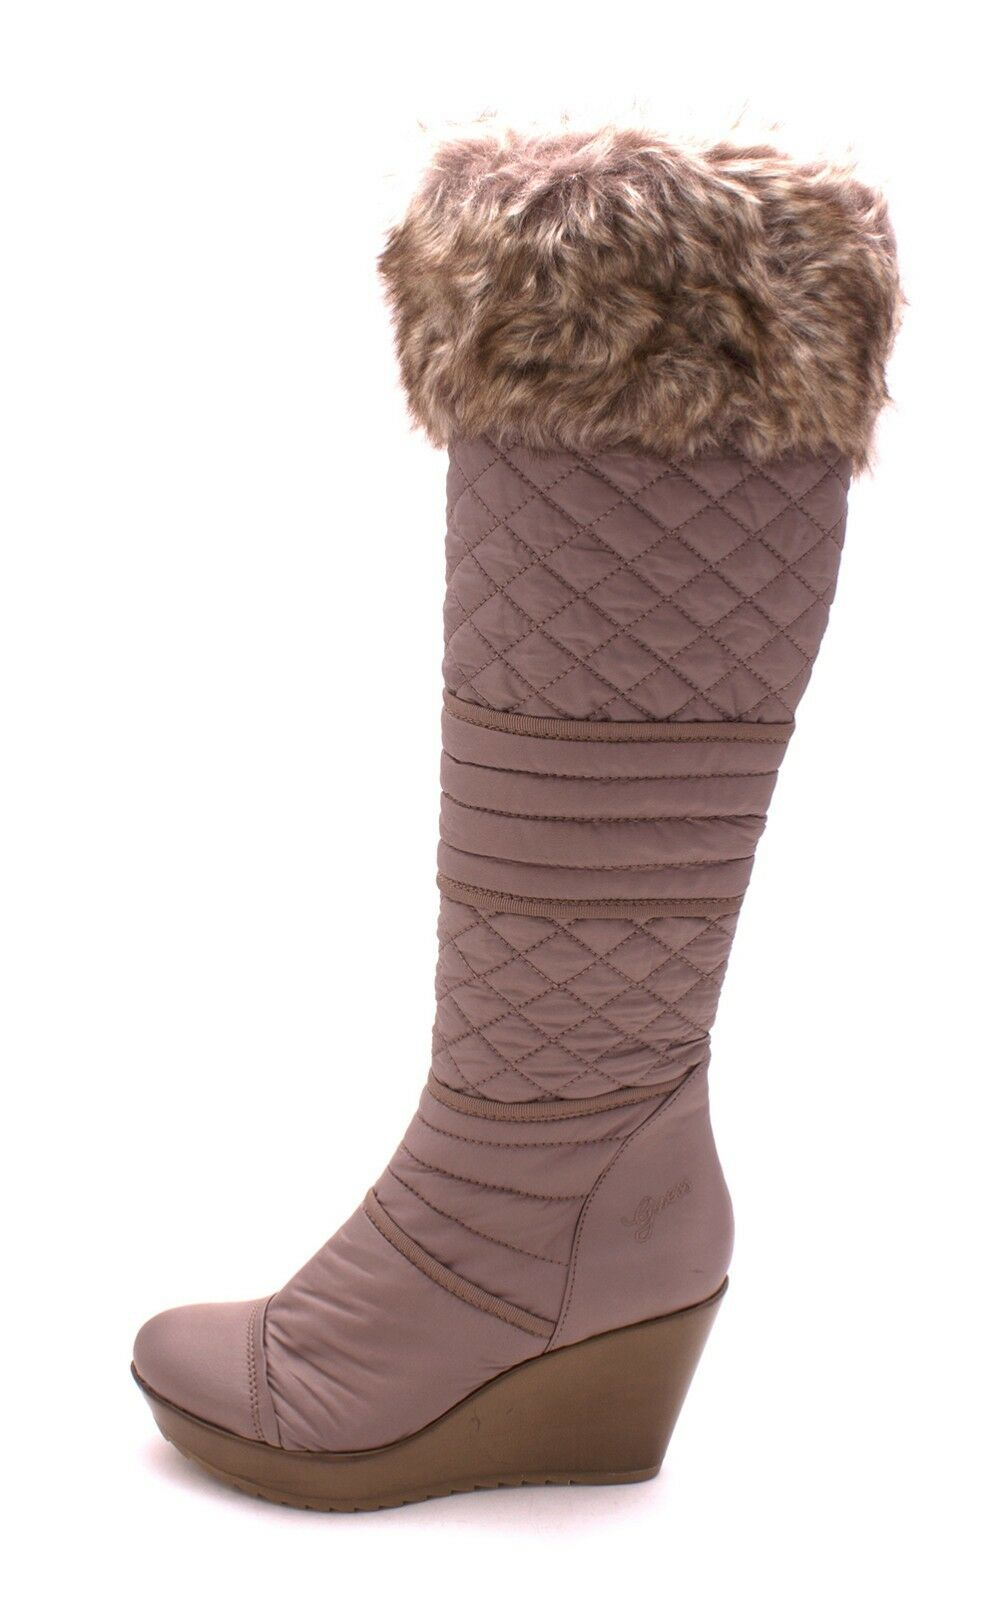 GUESS POZITA LOGO QUILTED NYLON FUR WEDGE TALL BOOTS US 10 I LOVE SHOES